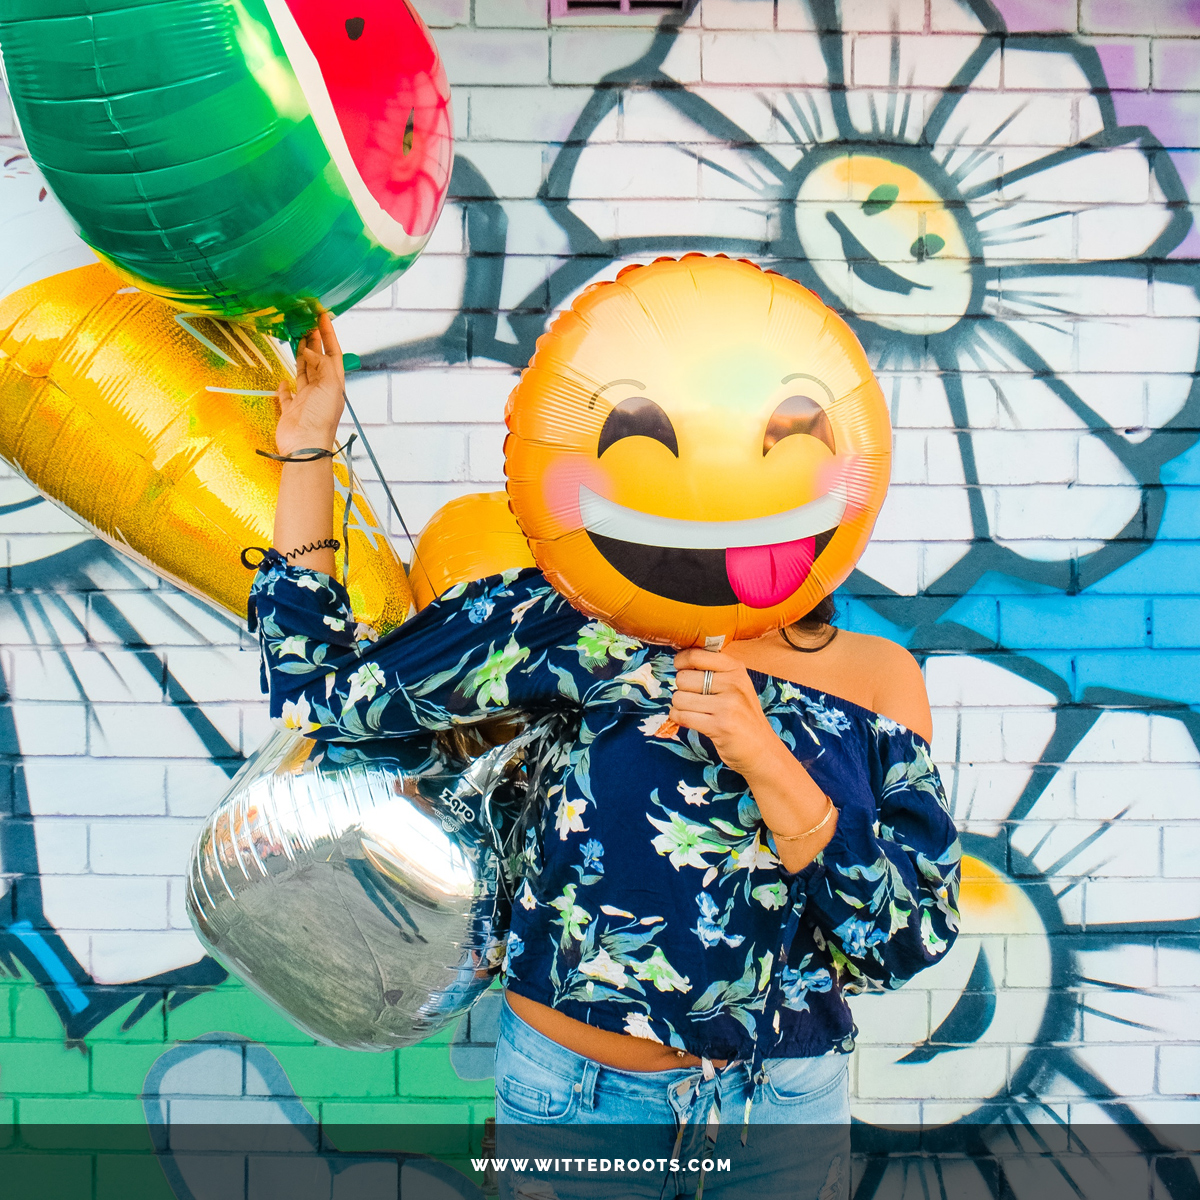 Woman in front of a wall mural, holding a smiley face emoji balloon in front of her face.